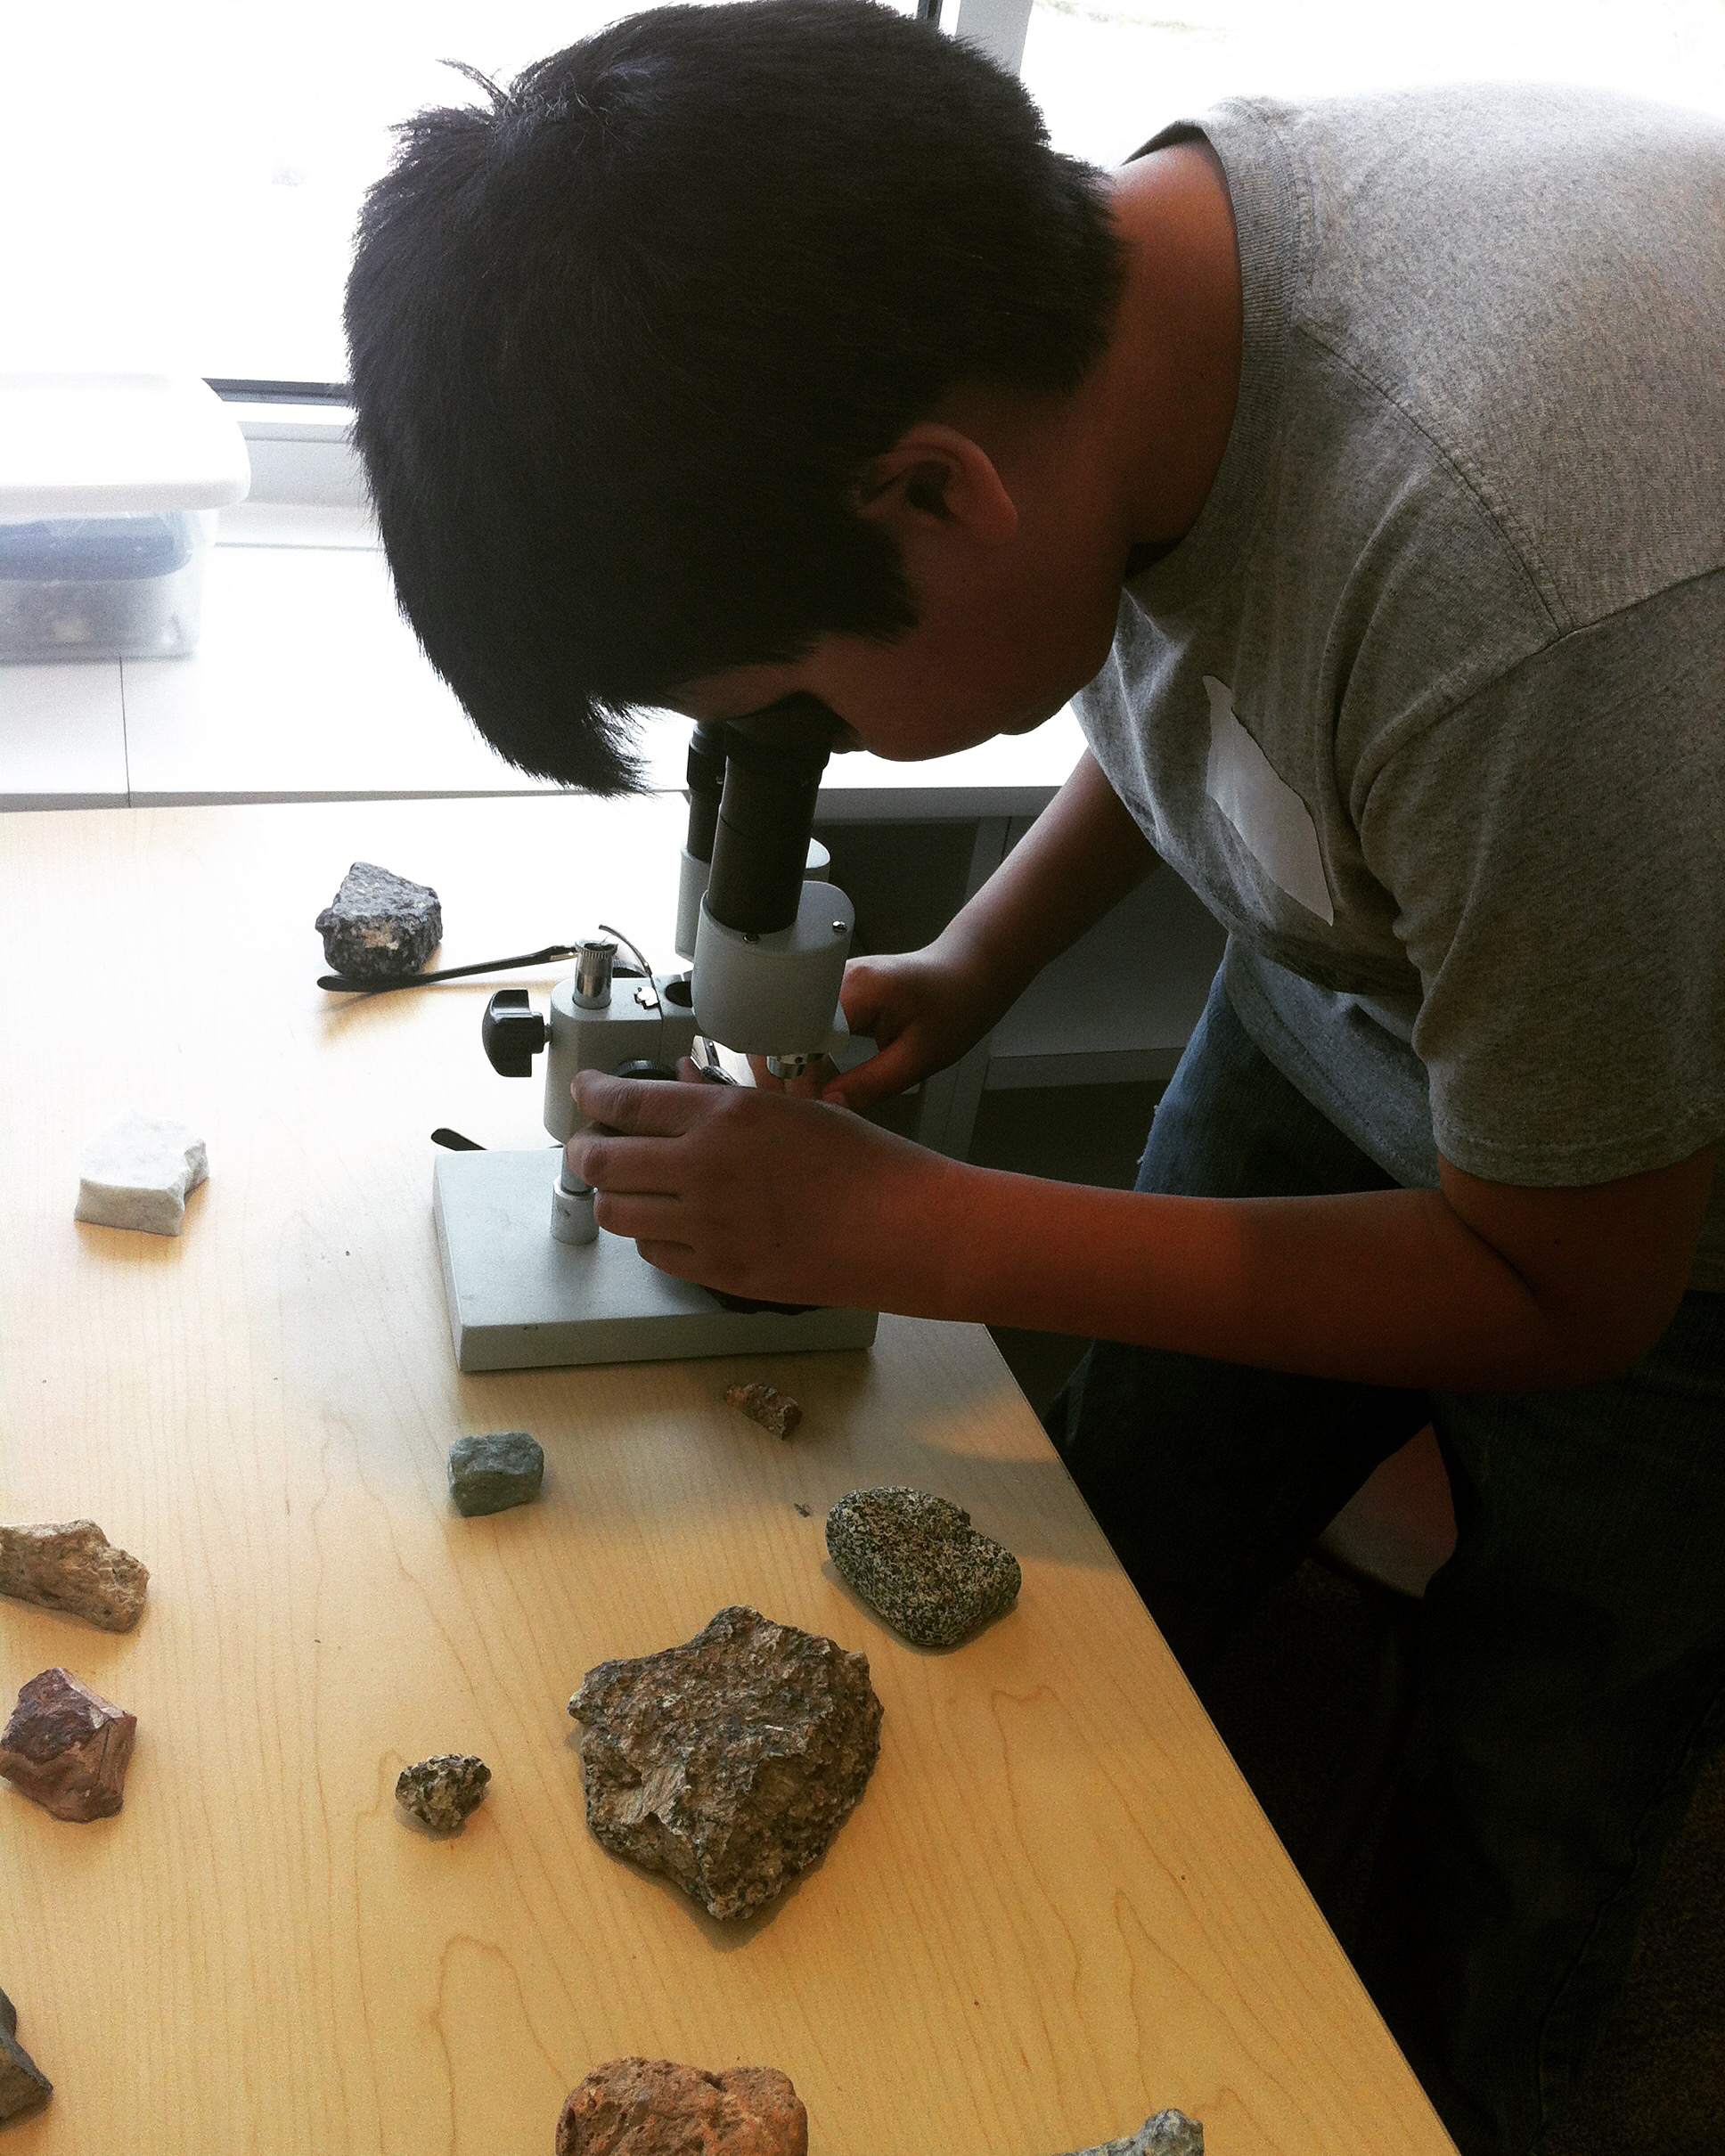 Student classifyies rock types using a microscope